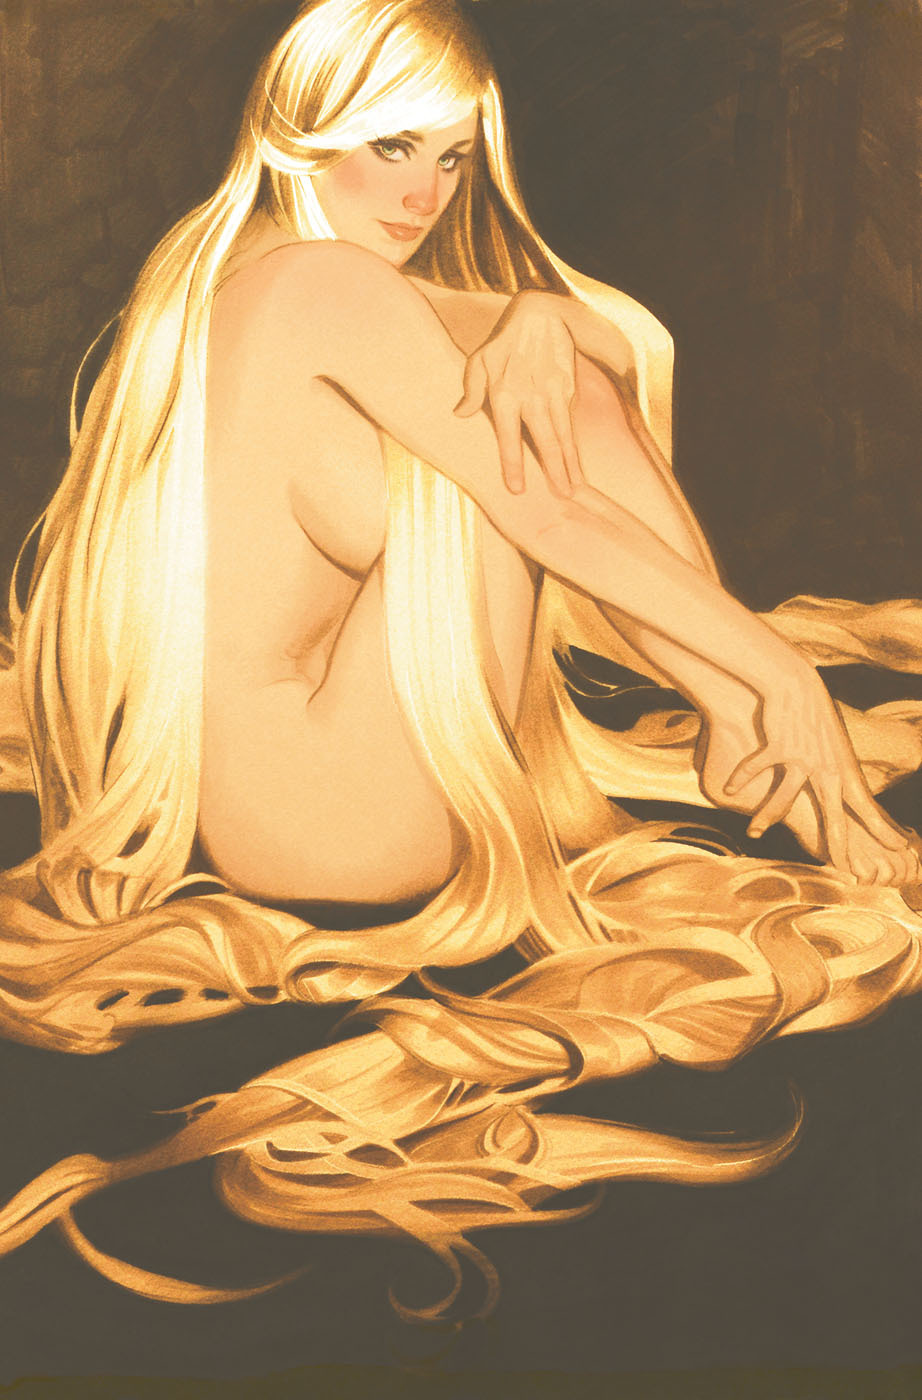 spacebetweenpanels:  Fairest #8  (Cover art by Adam Hughes)